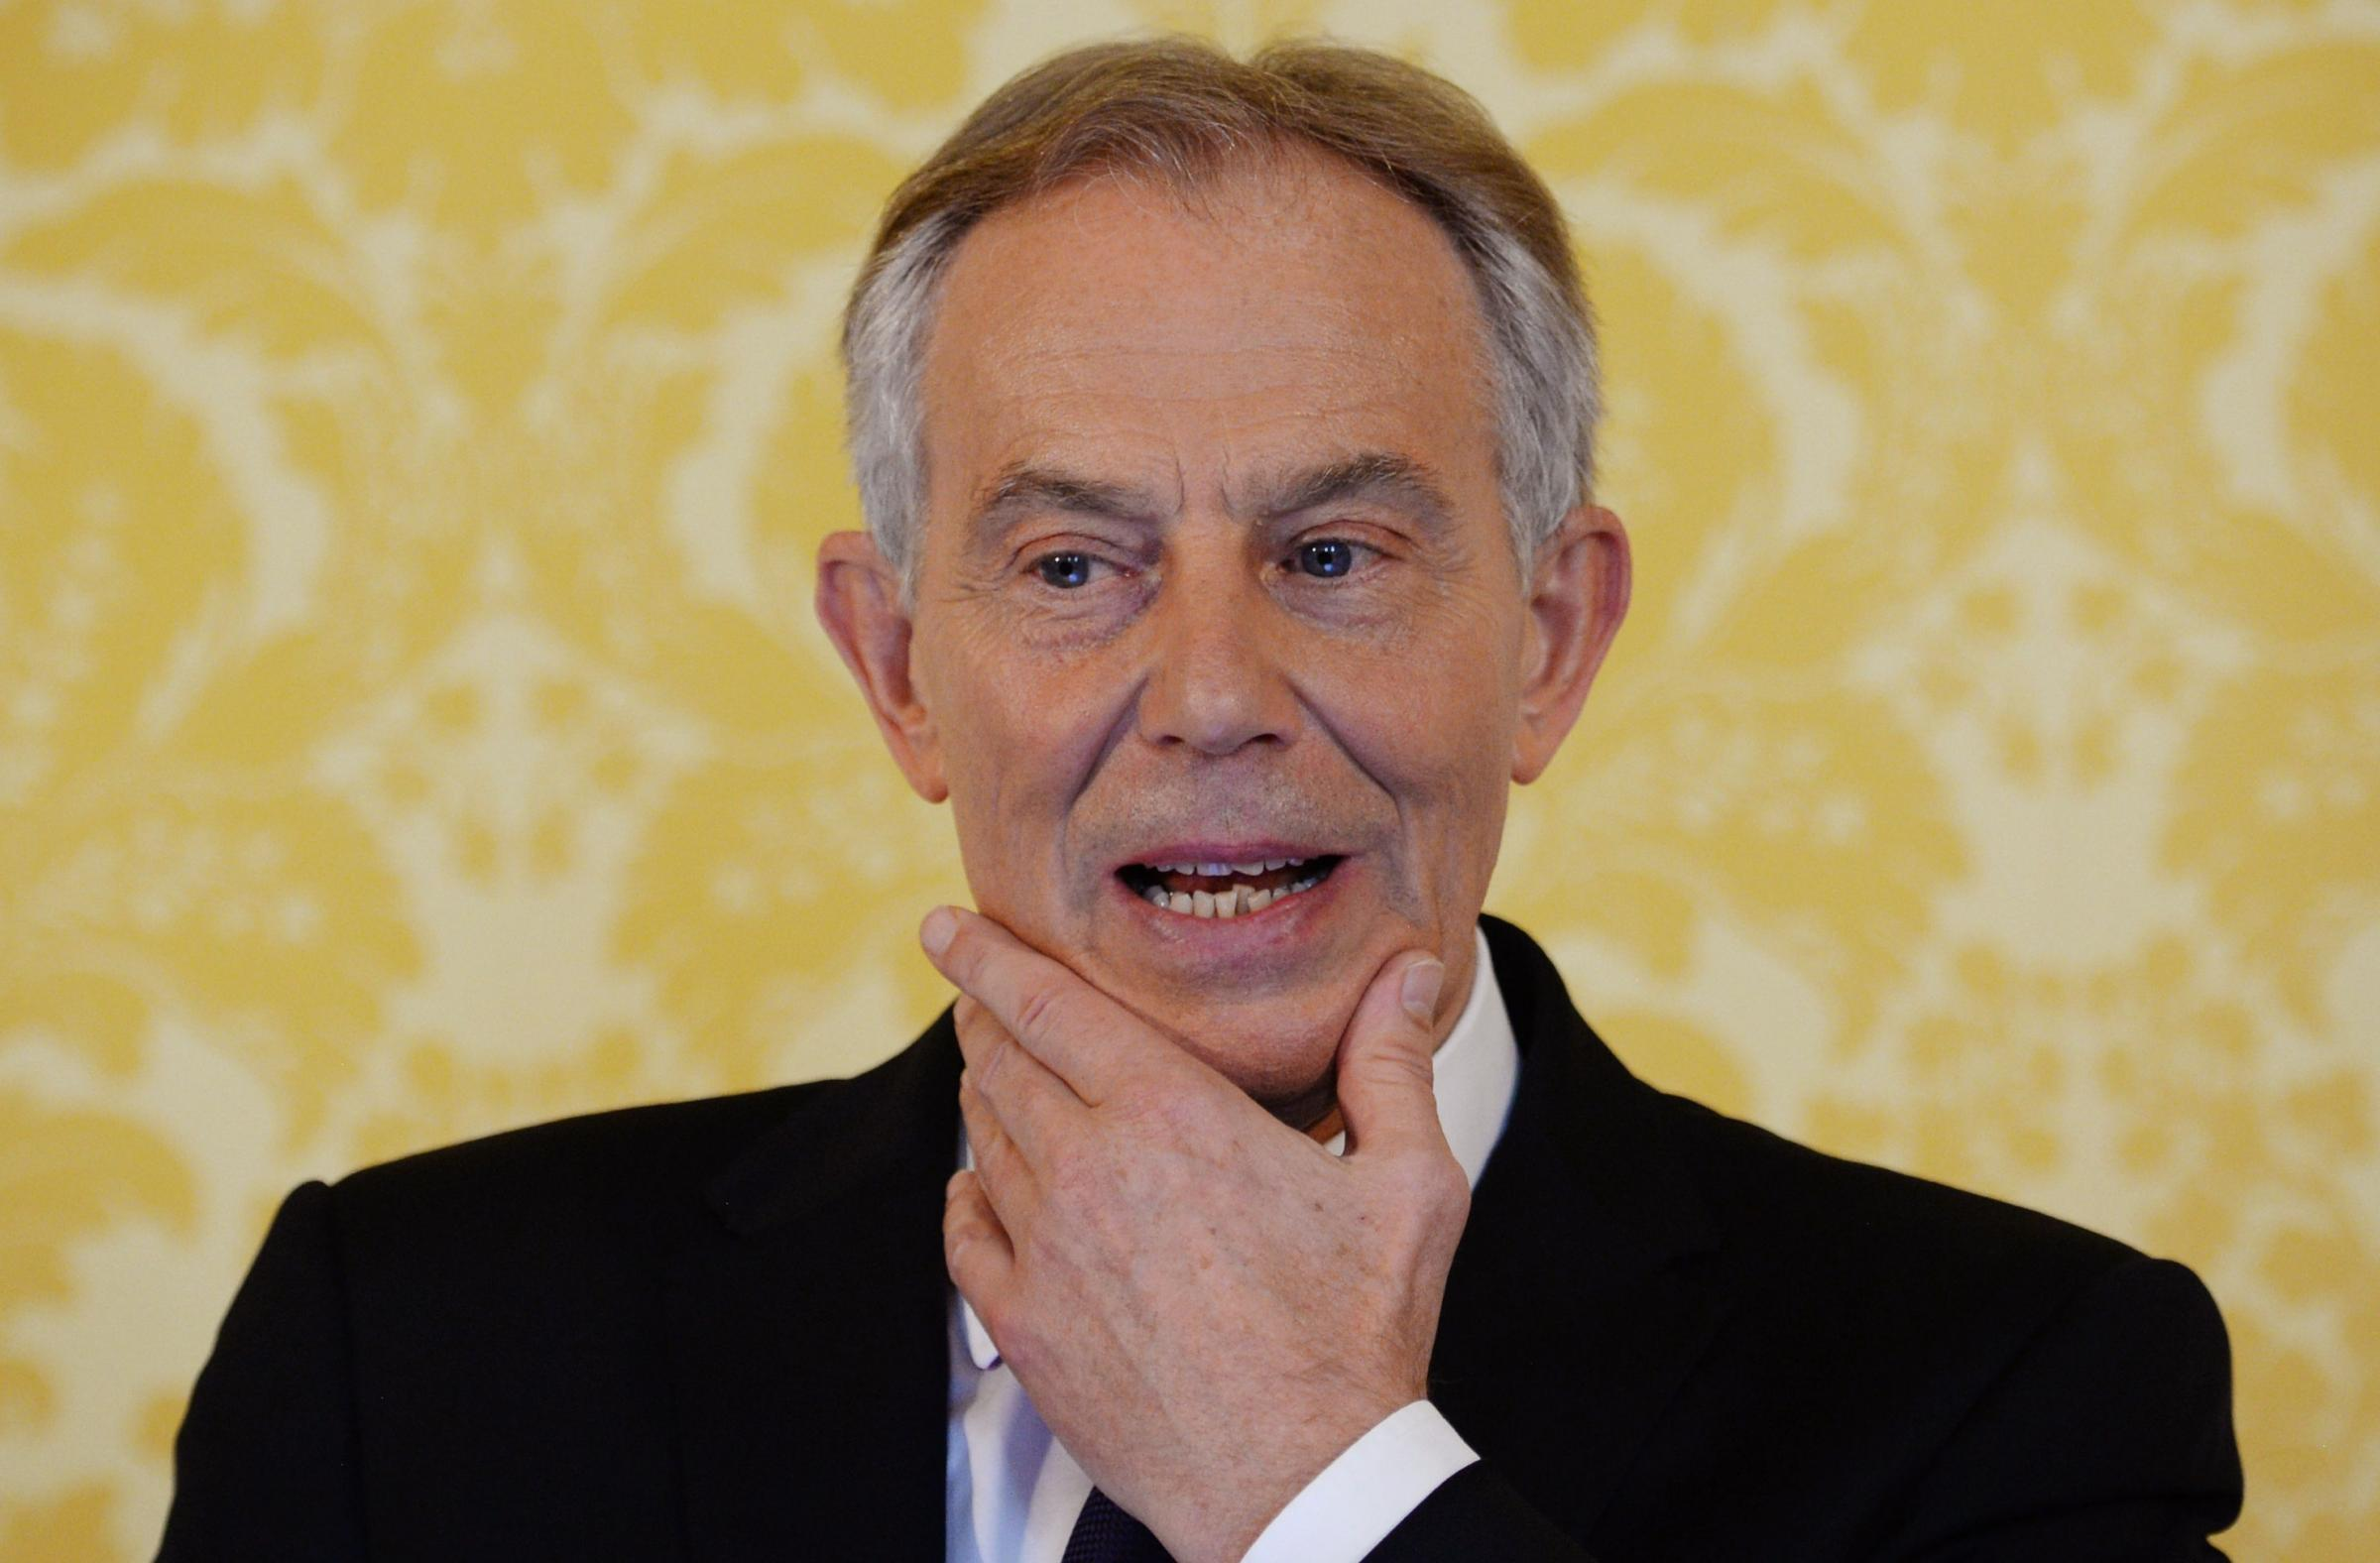 Without a first-past-the-post system  we would never have had Prime Minister Blair ... or austerity